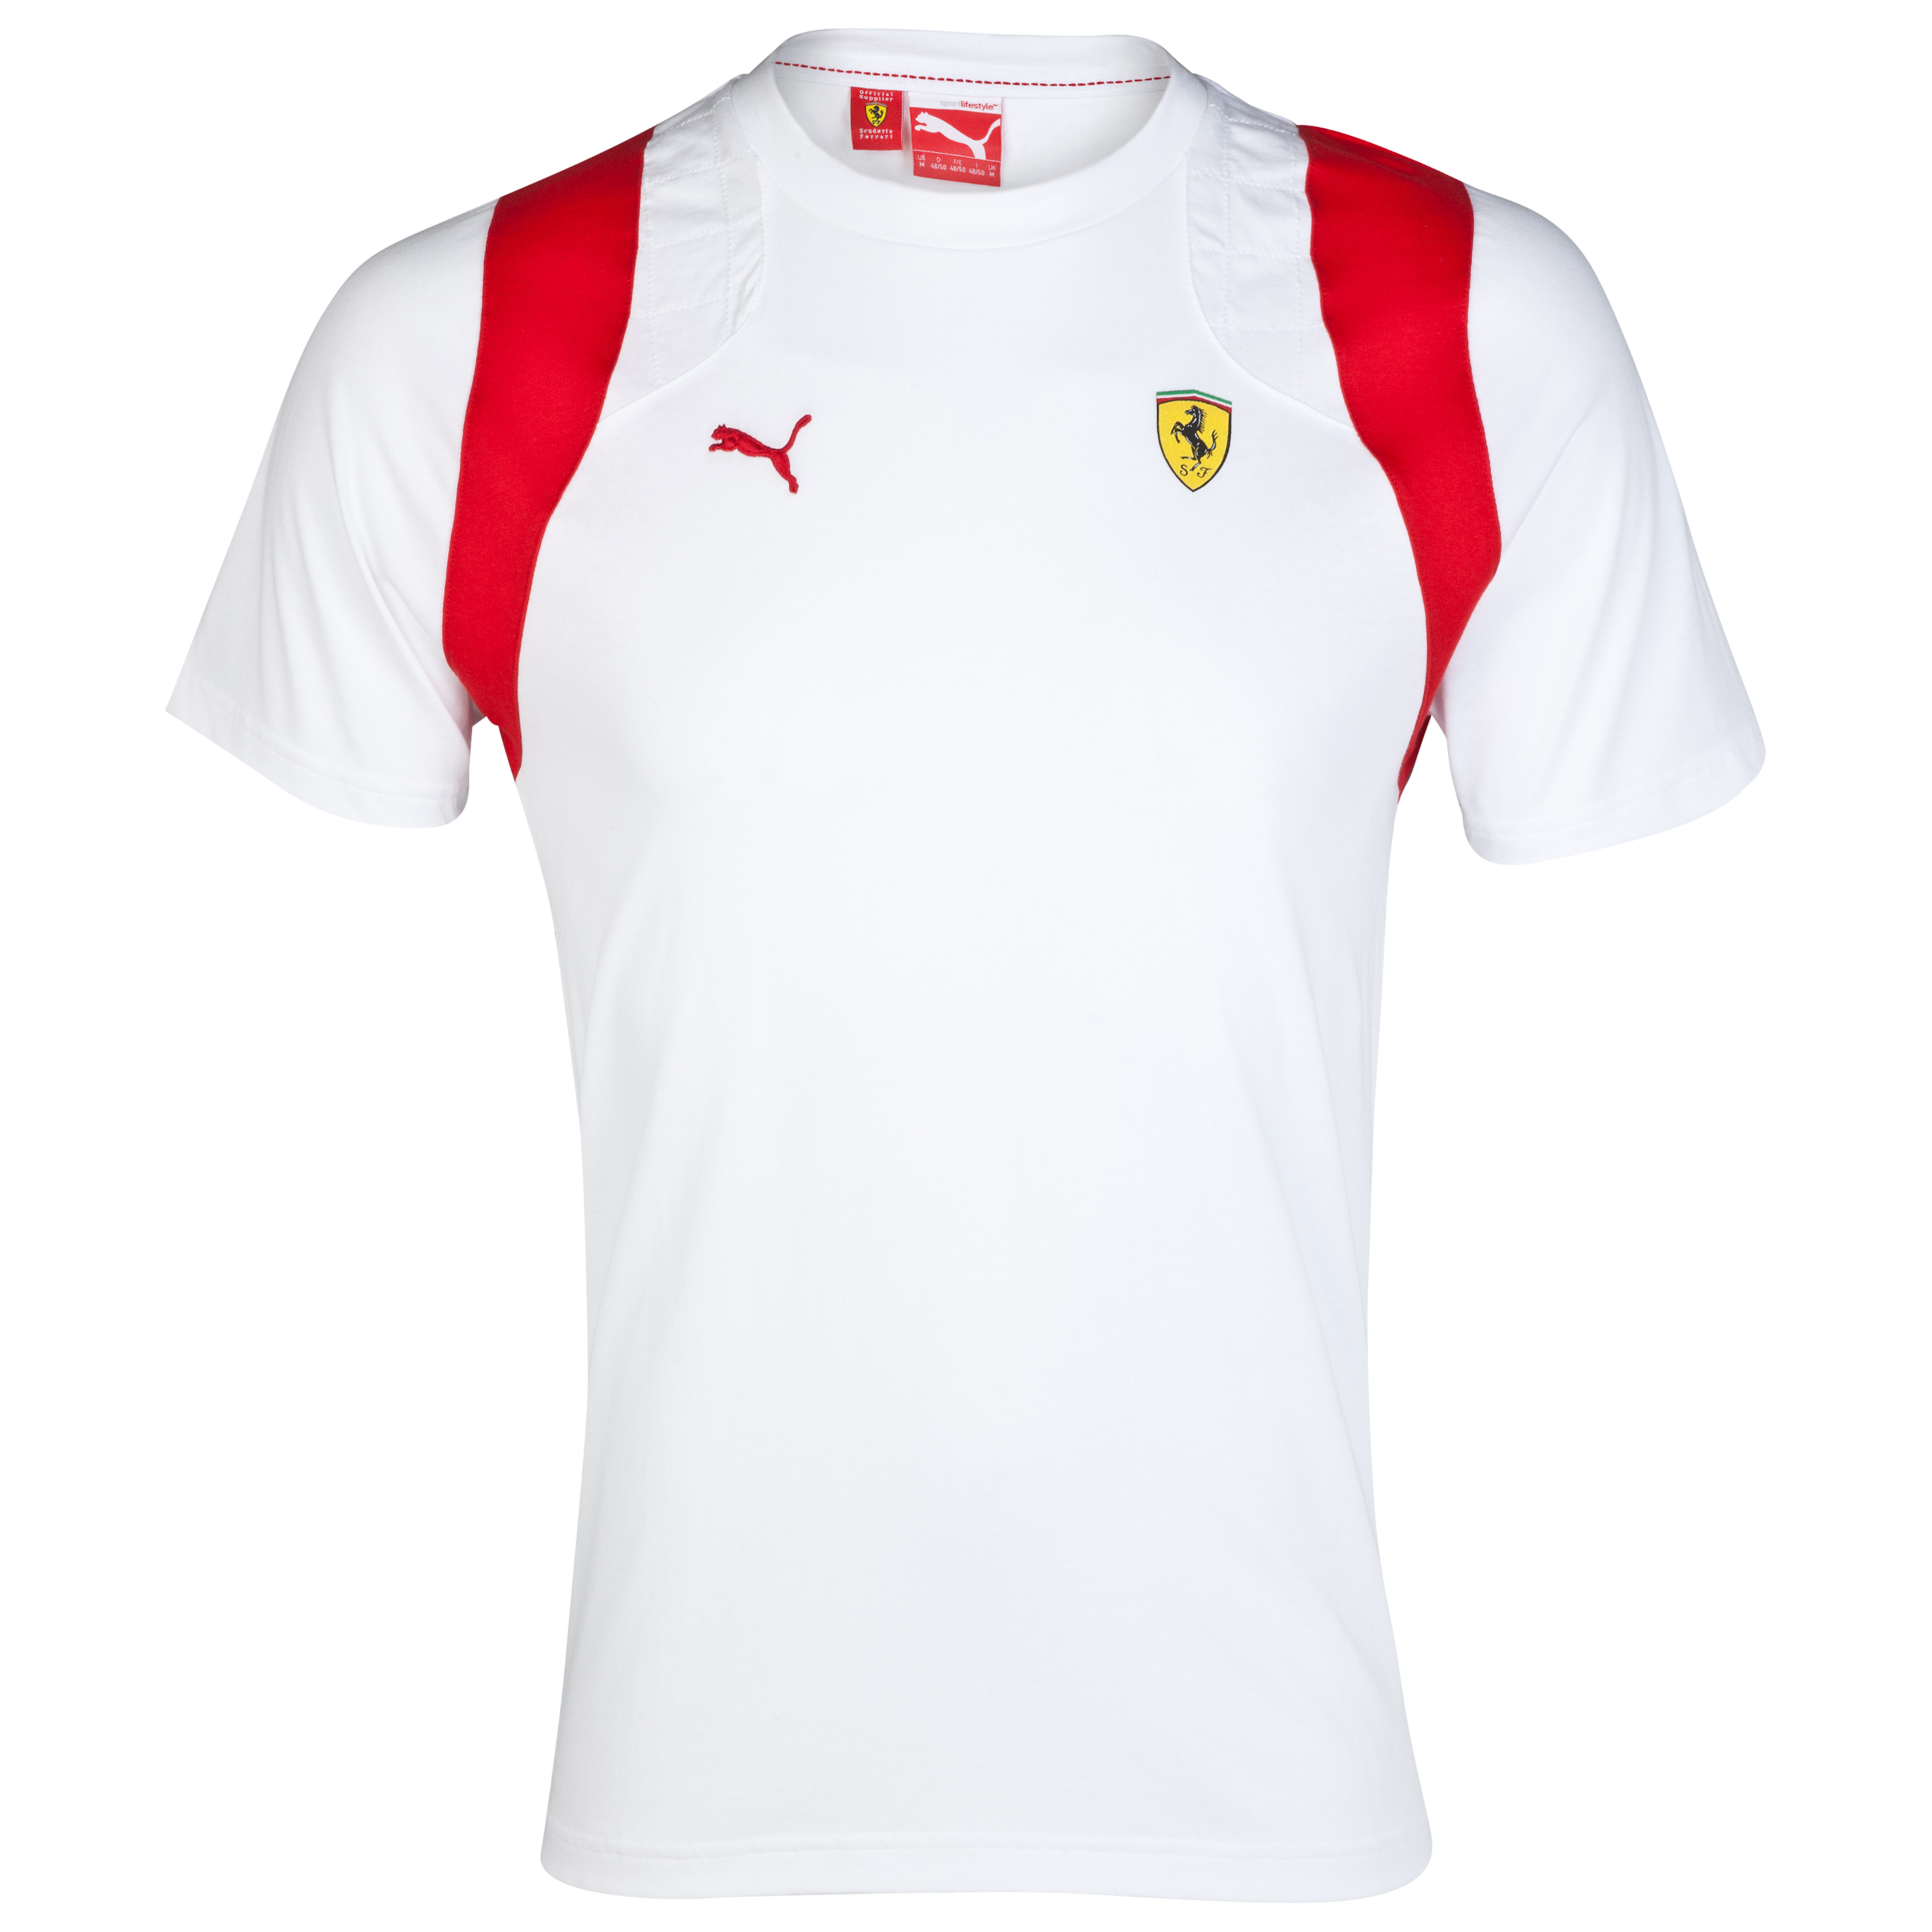 Scuderia Ferrari T-Shirt - White